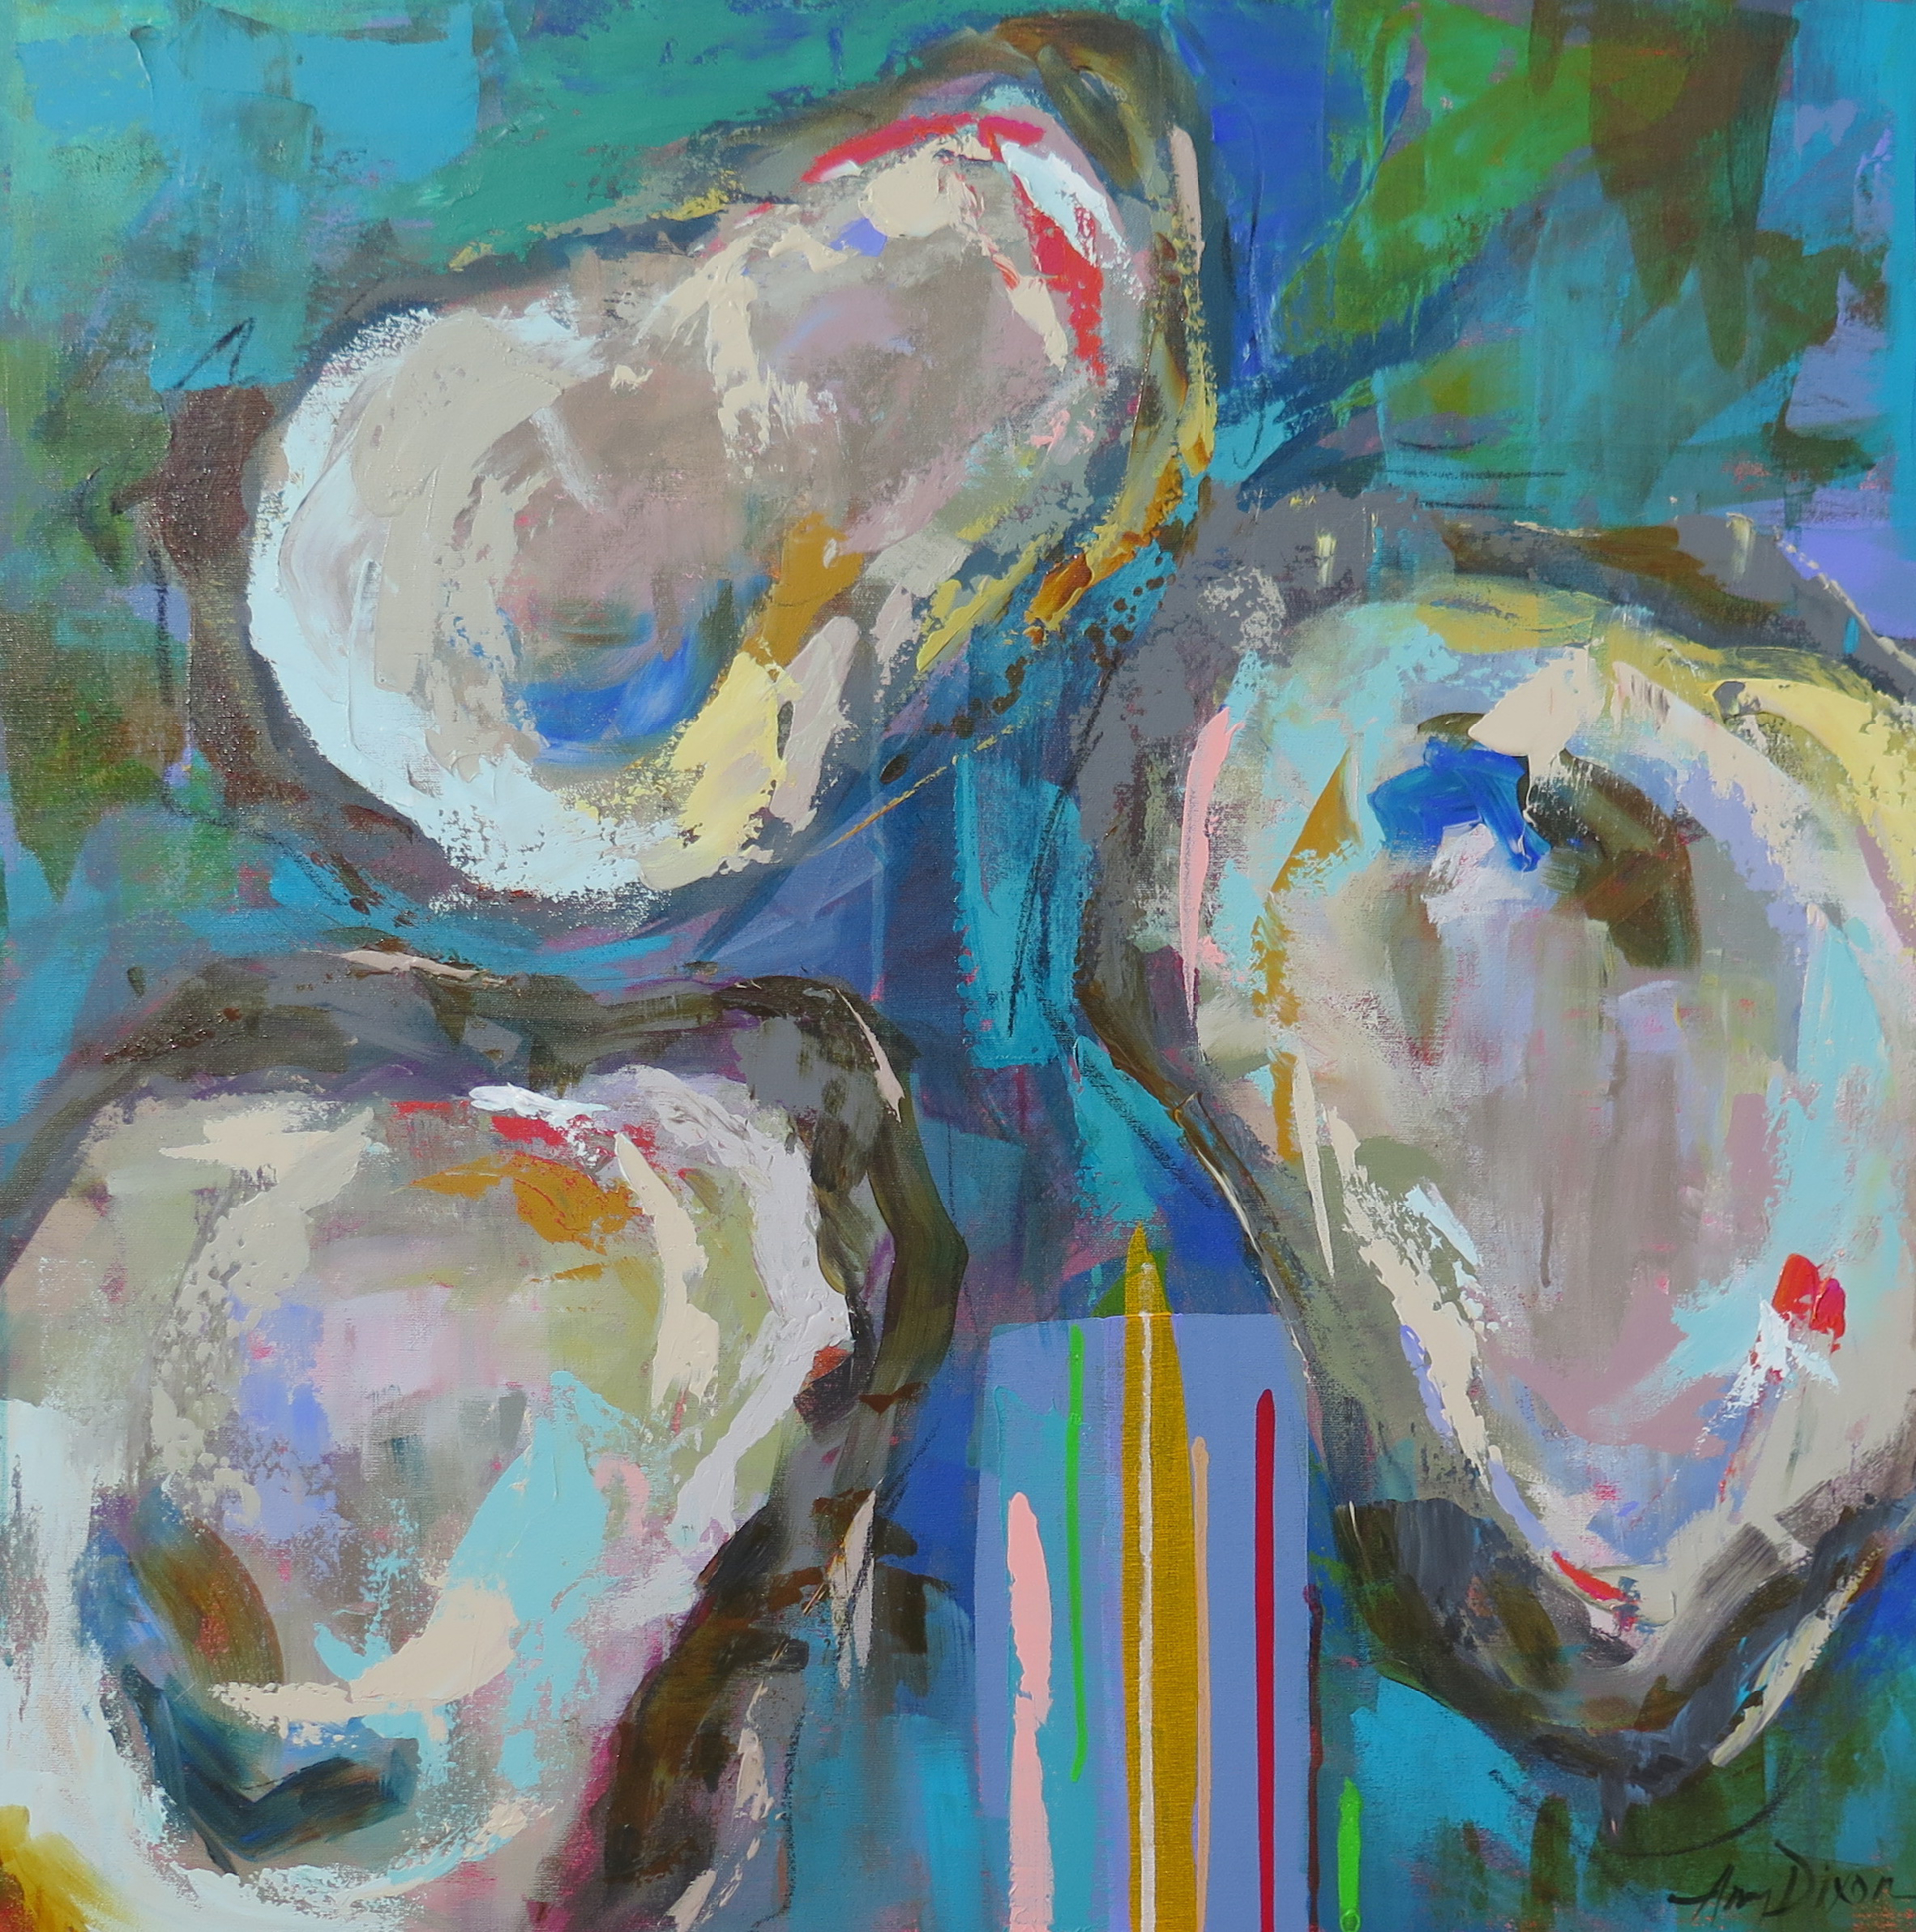 Oyster Stripes by Amy Dixon